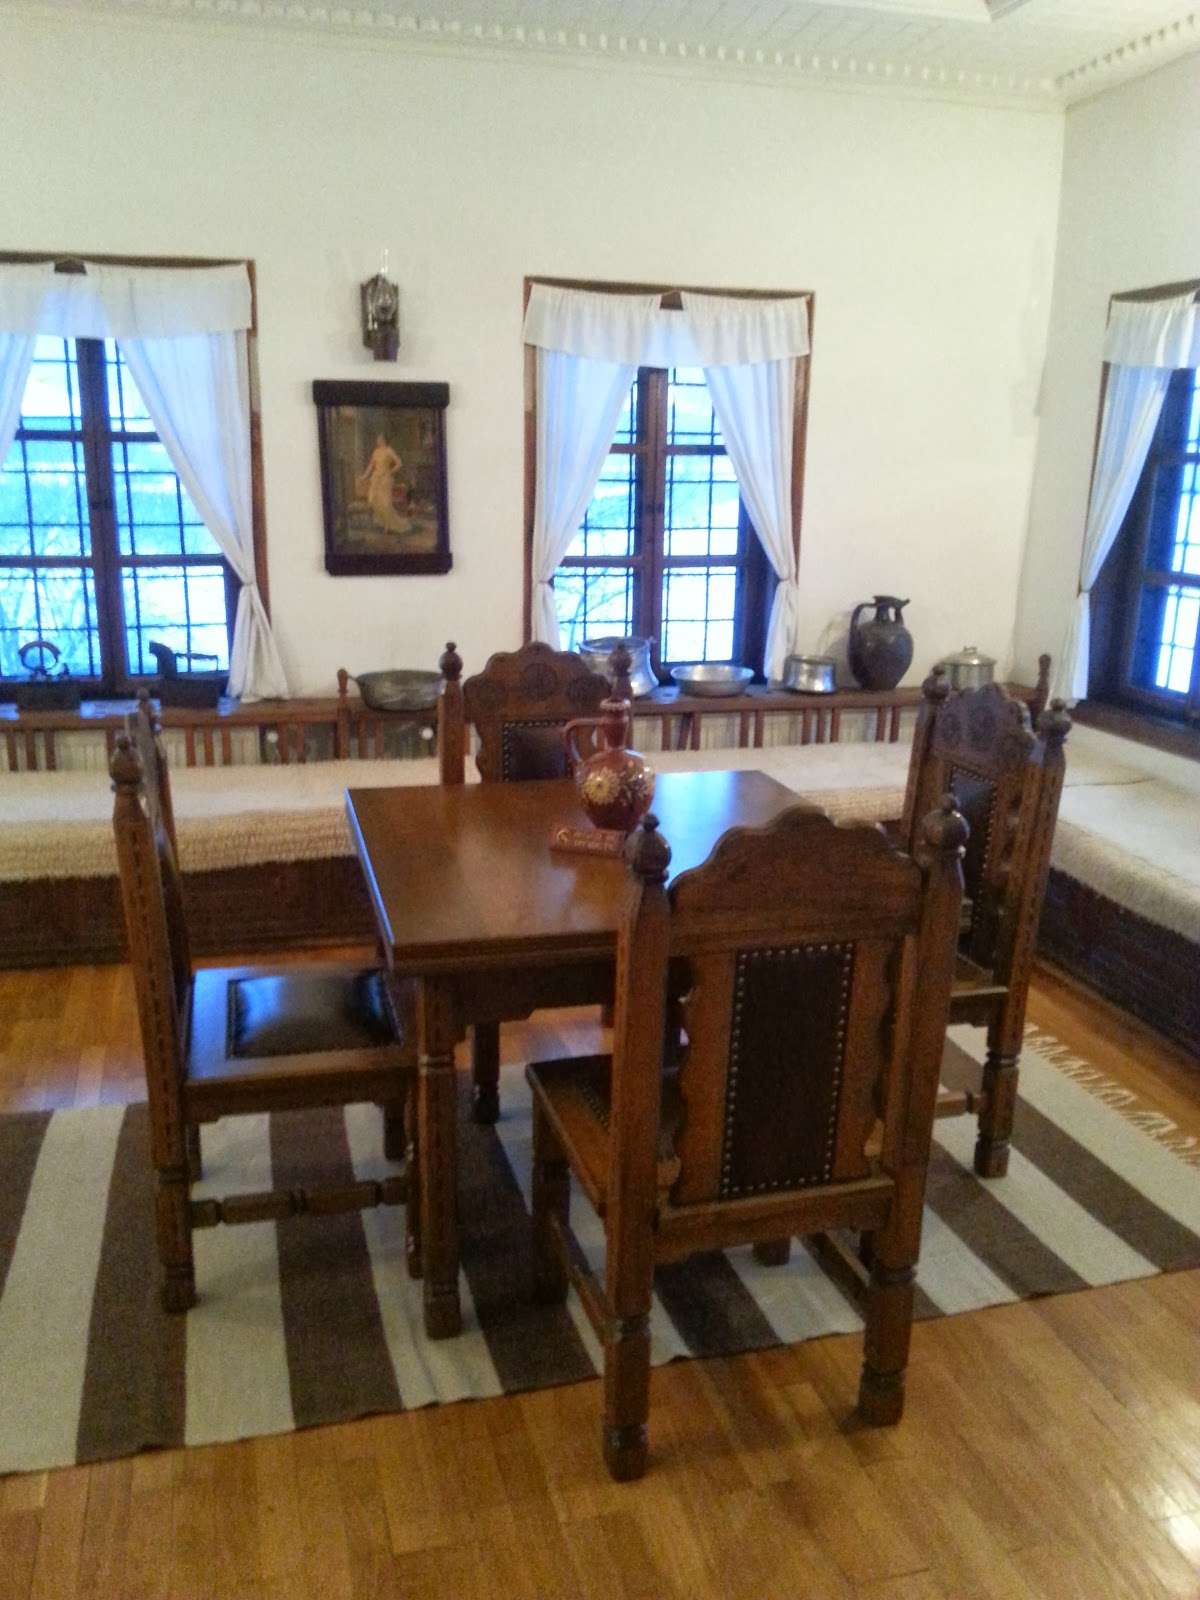 Arbanashki han meeting room